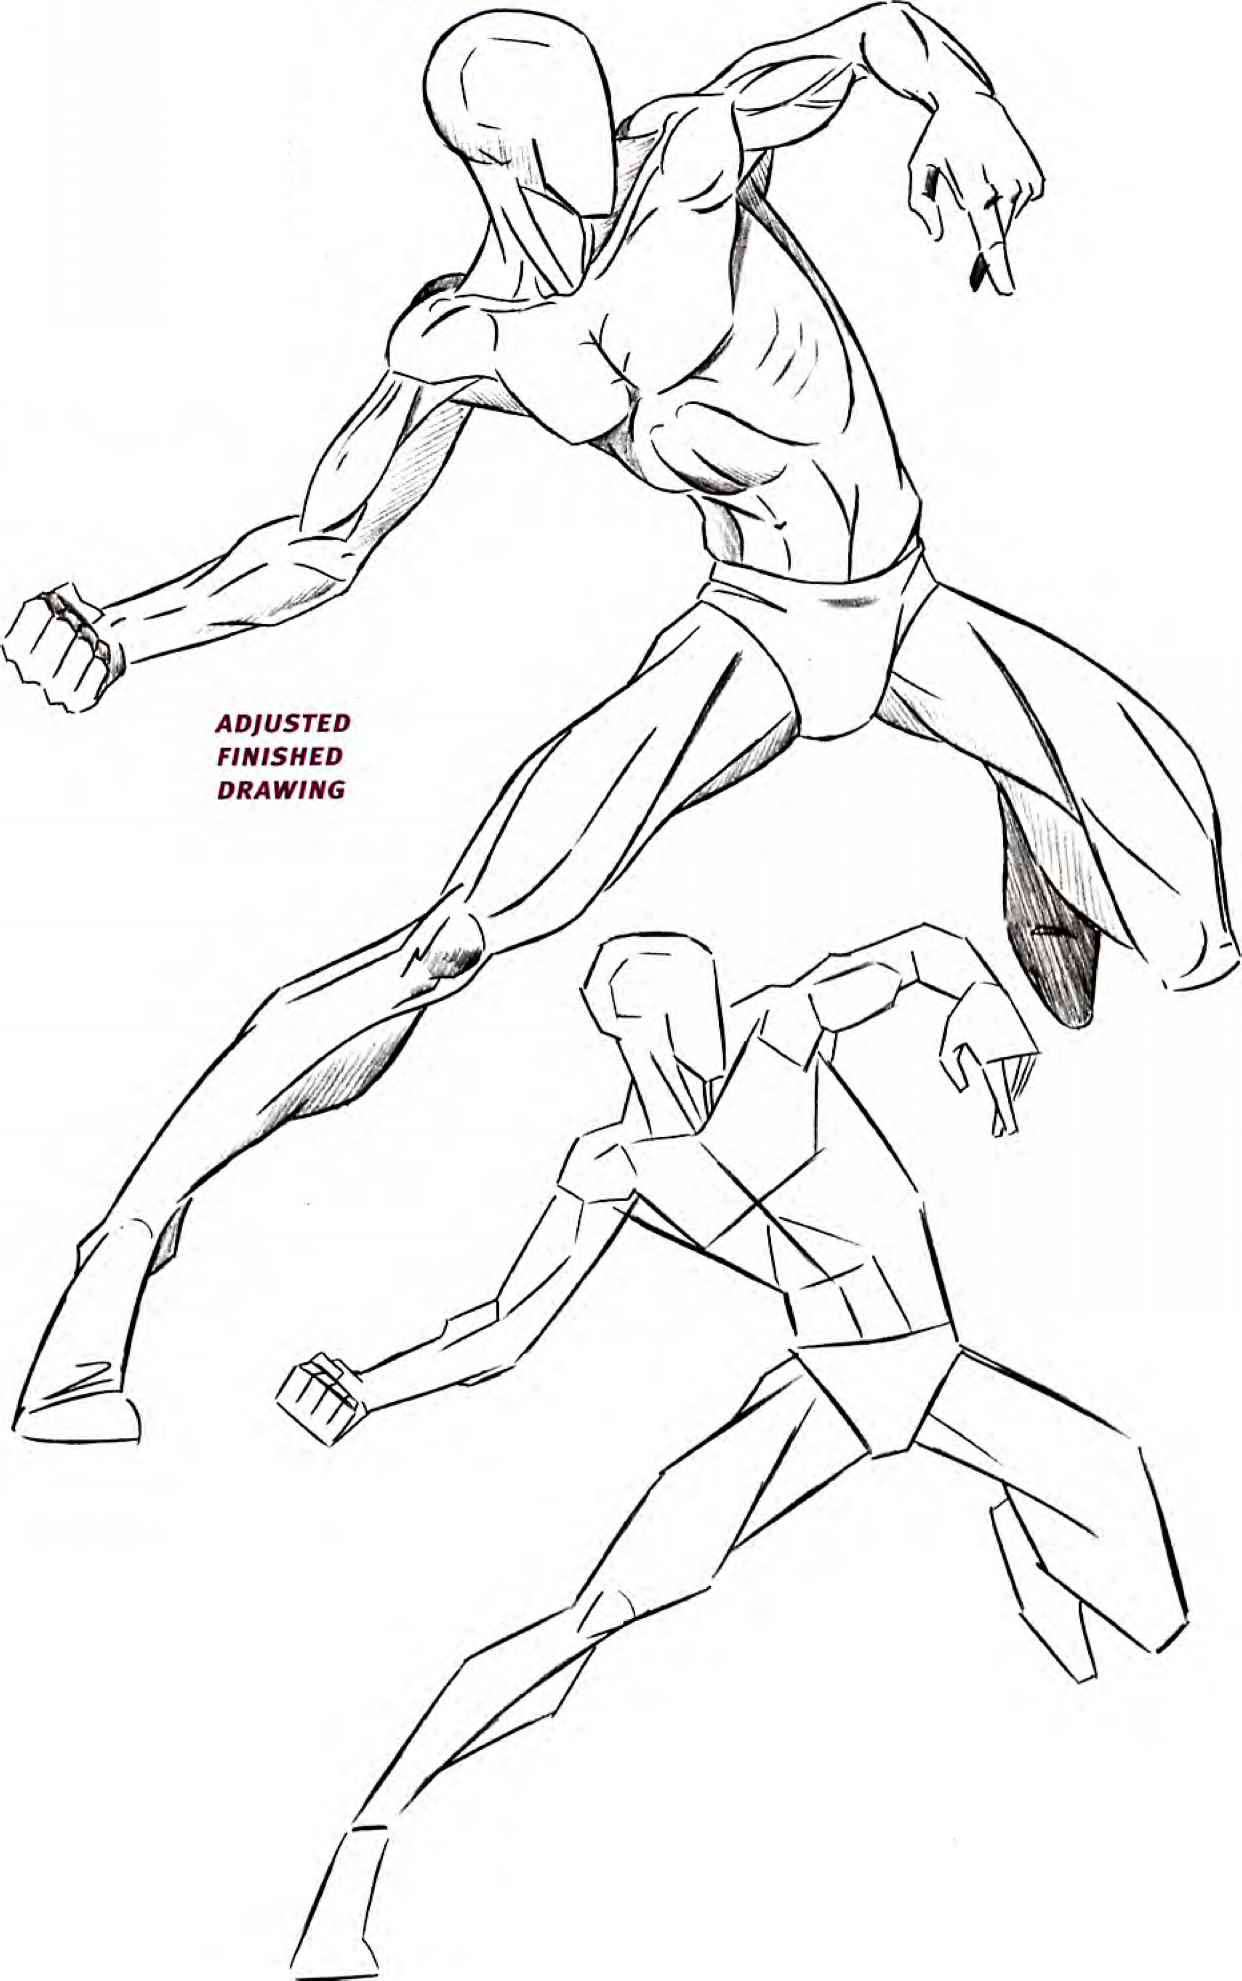 Human Body Anatomy Drawing at GetDrawings.com | Free for personal ...